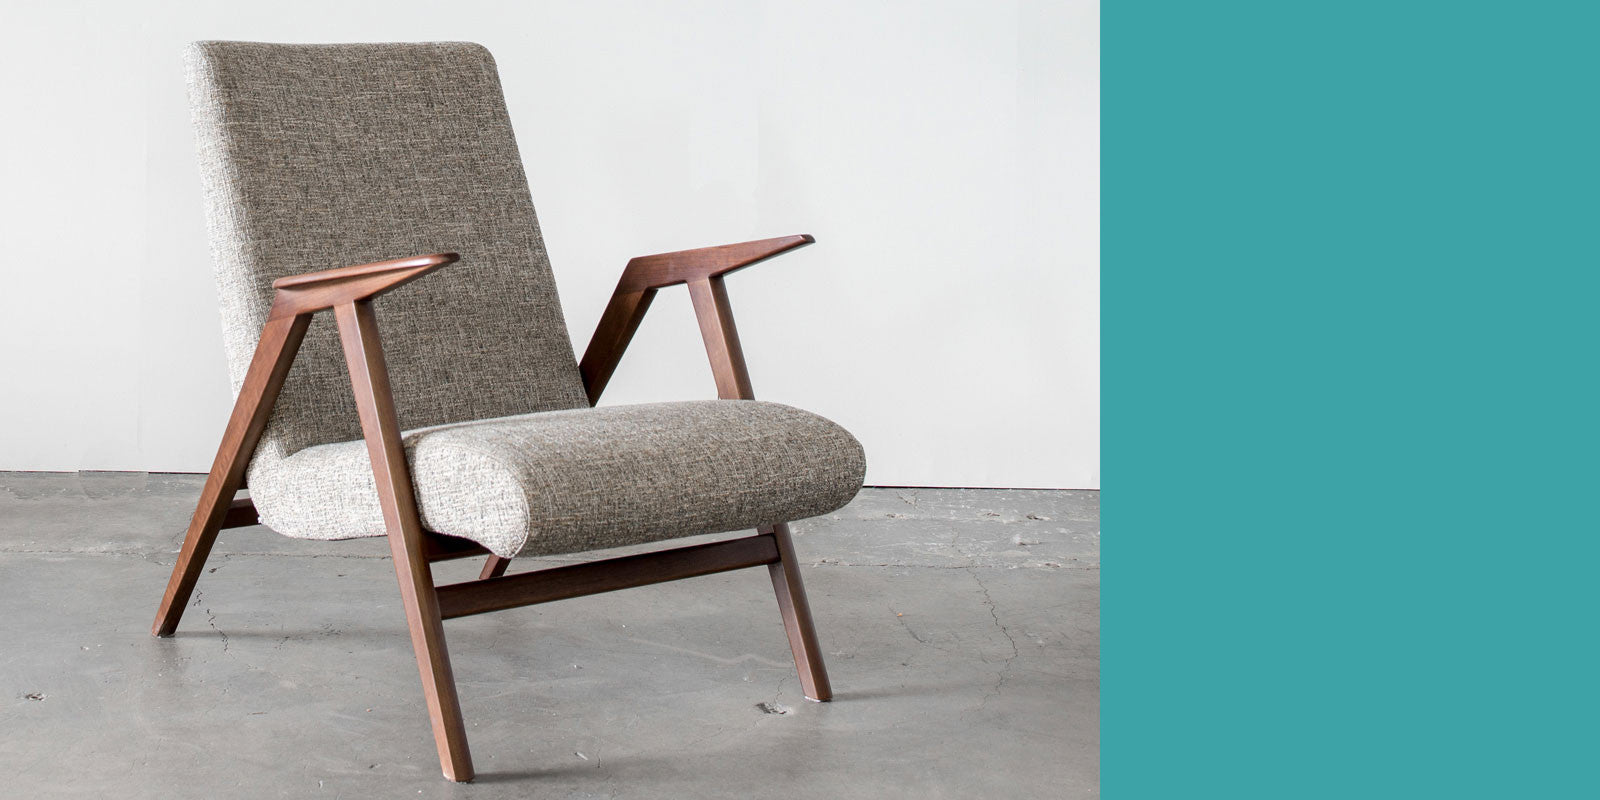 Swell Mid Century Handcrafted Modern Furniture Online Gingko Alphanode Cool Chair Designs And Ideas Alphanodeonline